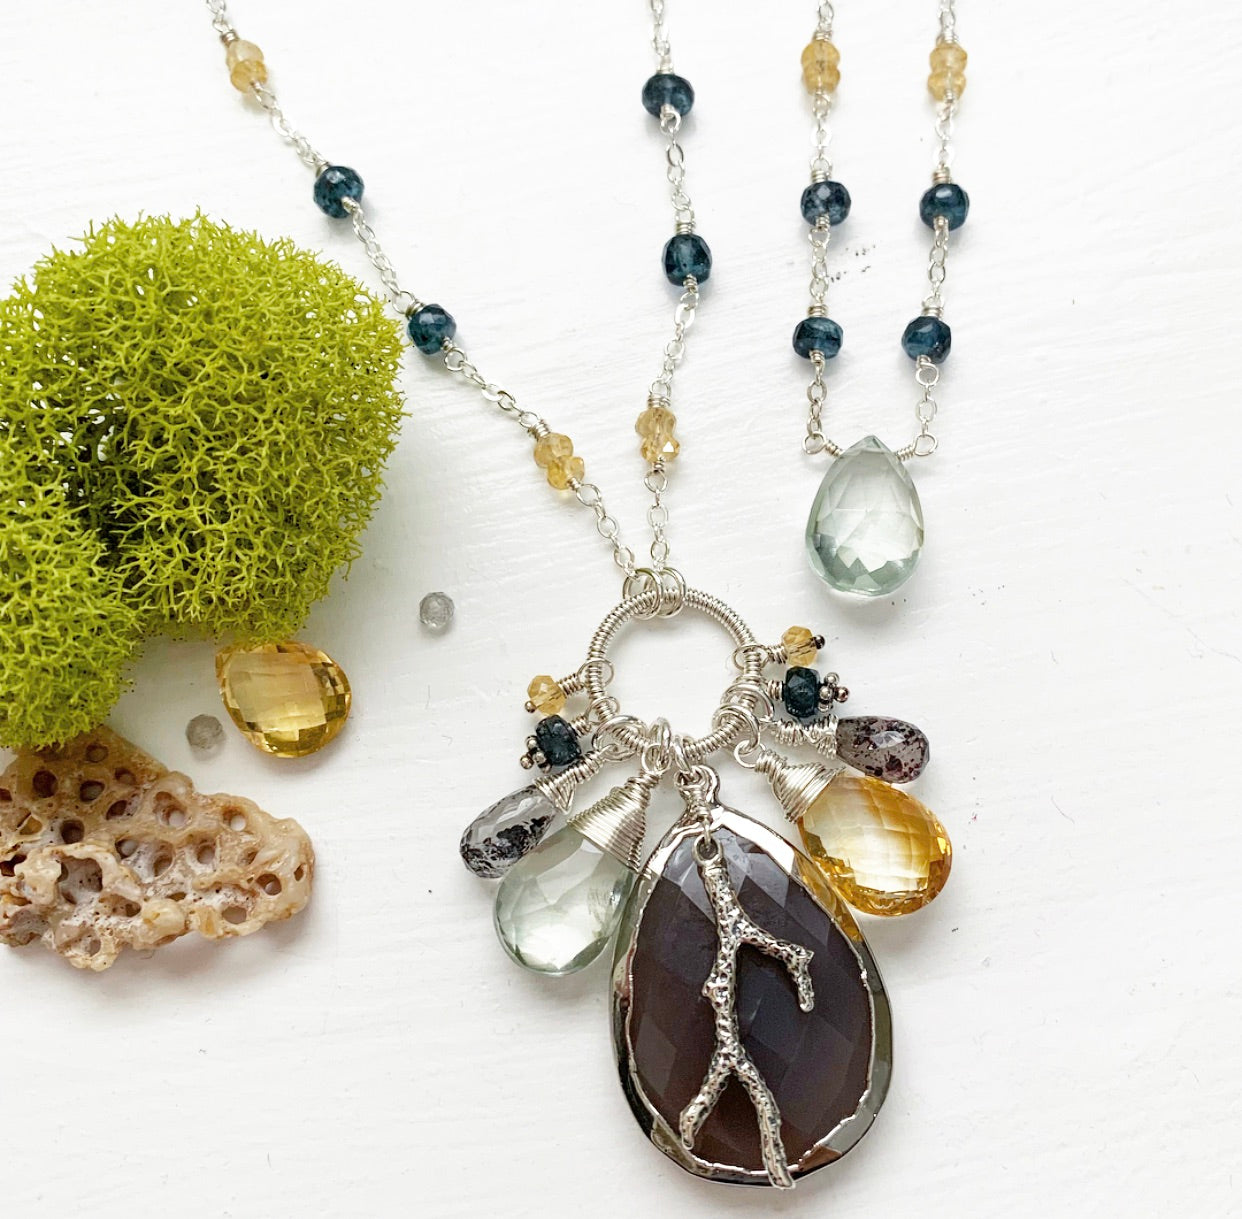 706-One of a Kind Gemstone Drop Necklace